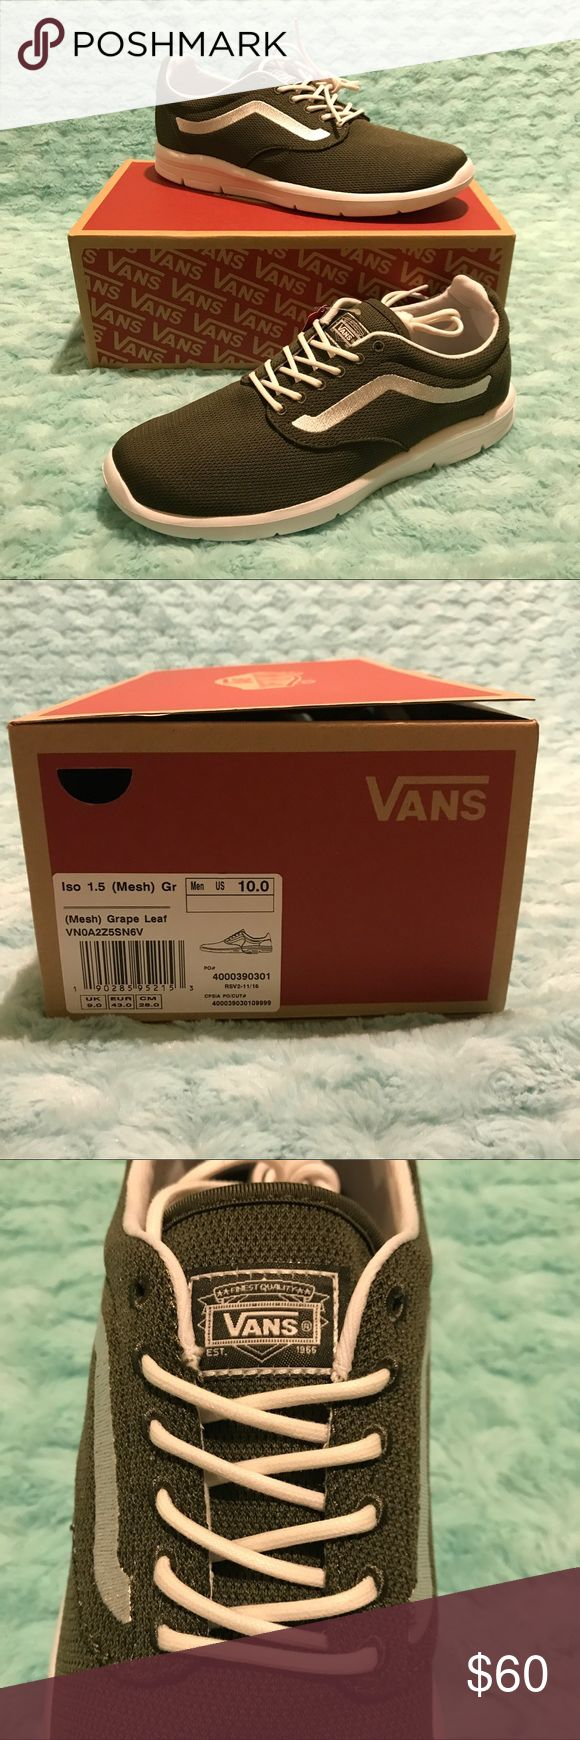 Vans Iso 1.5 Mesh Grape Leaf Mens Lace Up Trainers Vans Iso 1.5 Mesh Grape Leaf Mens Lace Up Trainers Lightweight New Size US 10  MENS US size 10  NEW in box!  Please see pictures, Thank you! Vans Shoes Sneakers